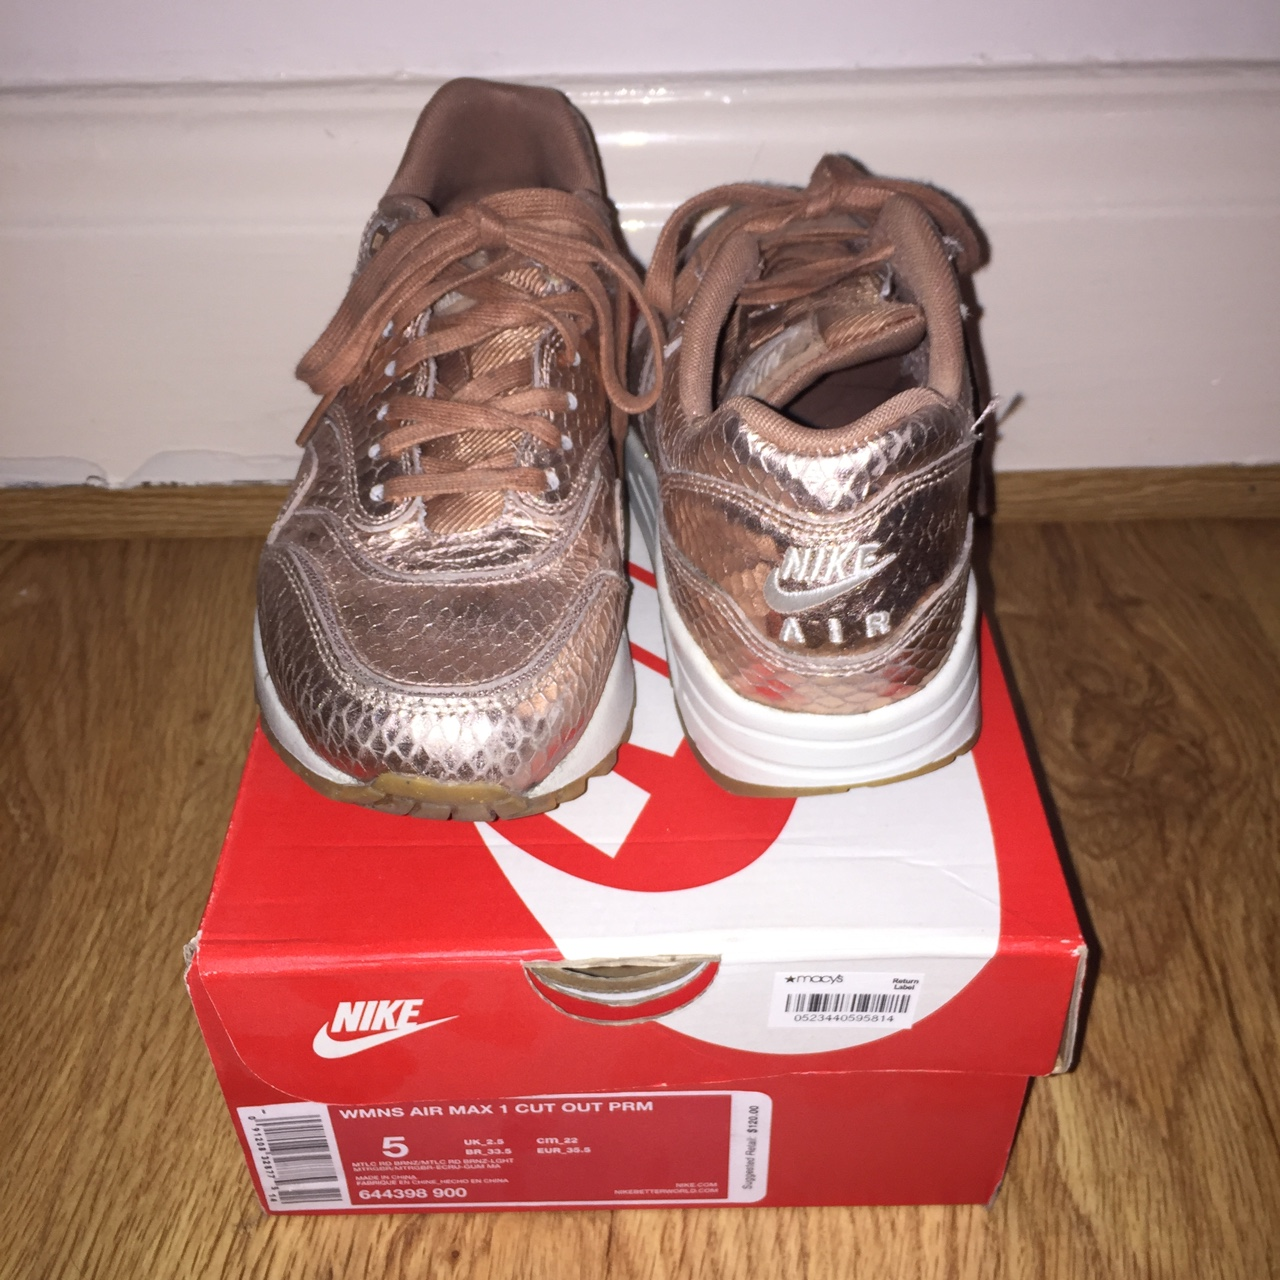 Nike women's Air Max 1 AM1 Cut Out PRM. Rose gold Depop